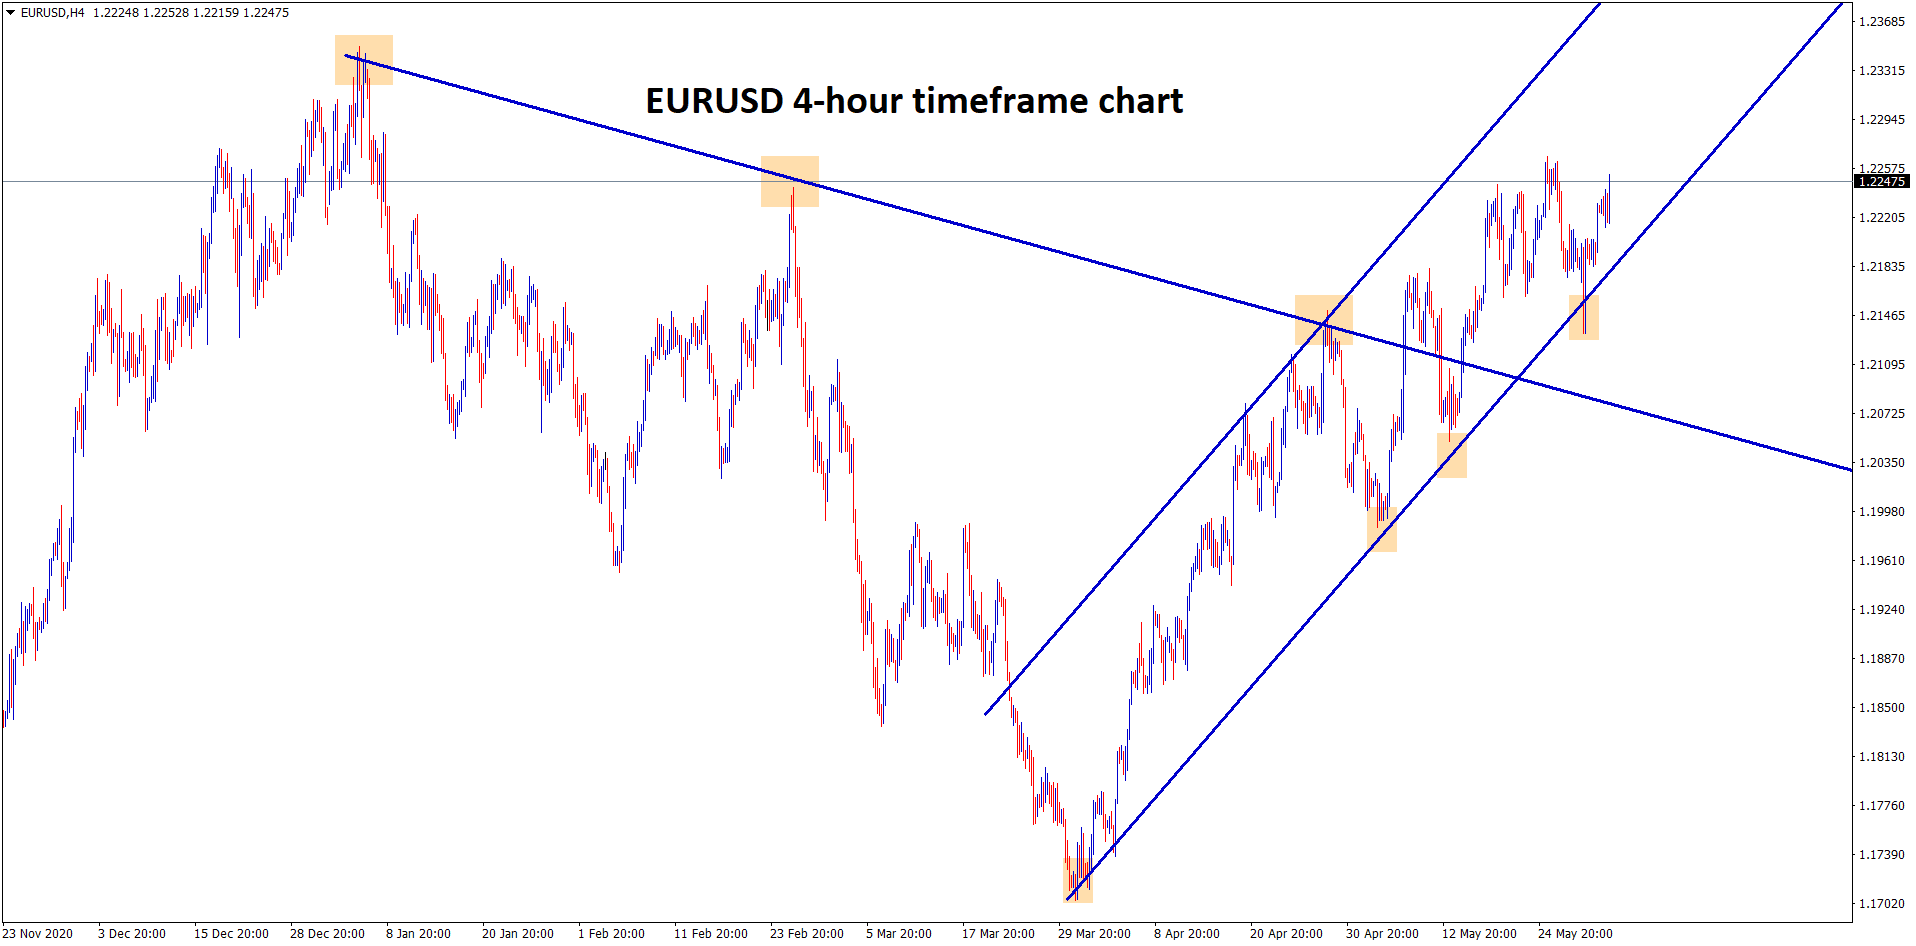 eurusd moving in an uptrend continuously breaking higher highs